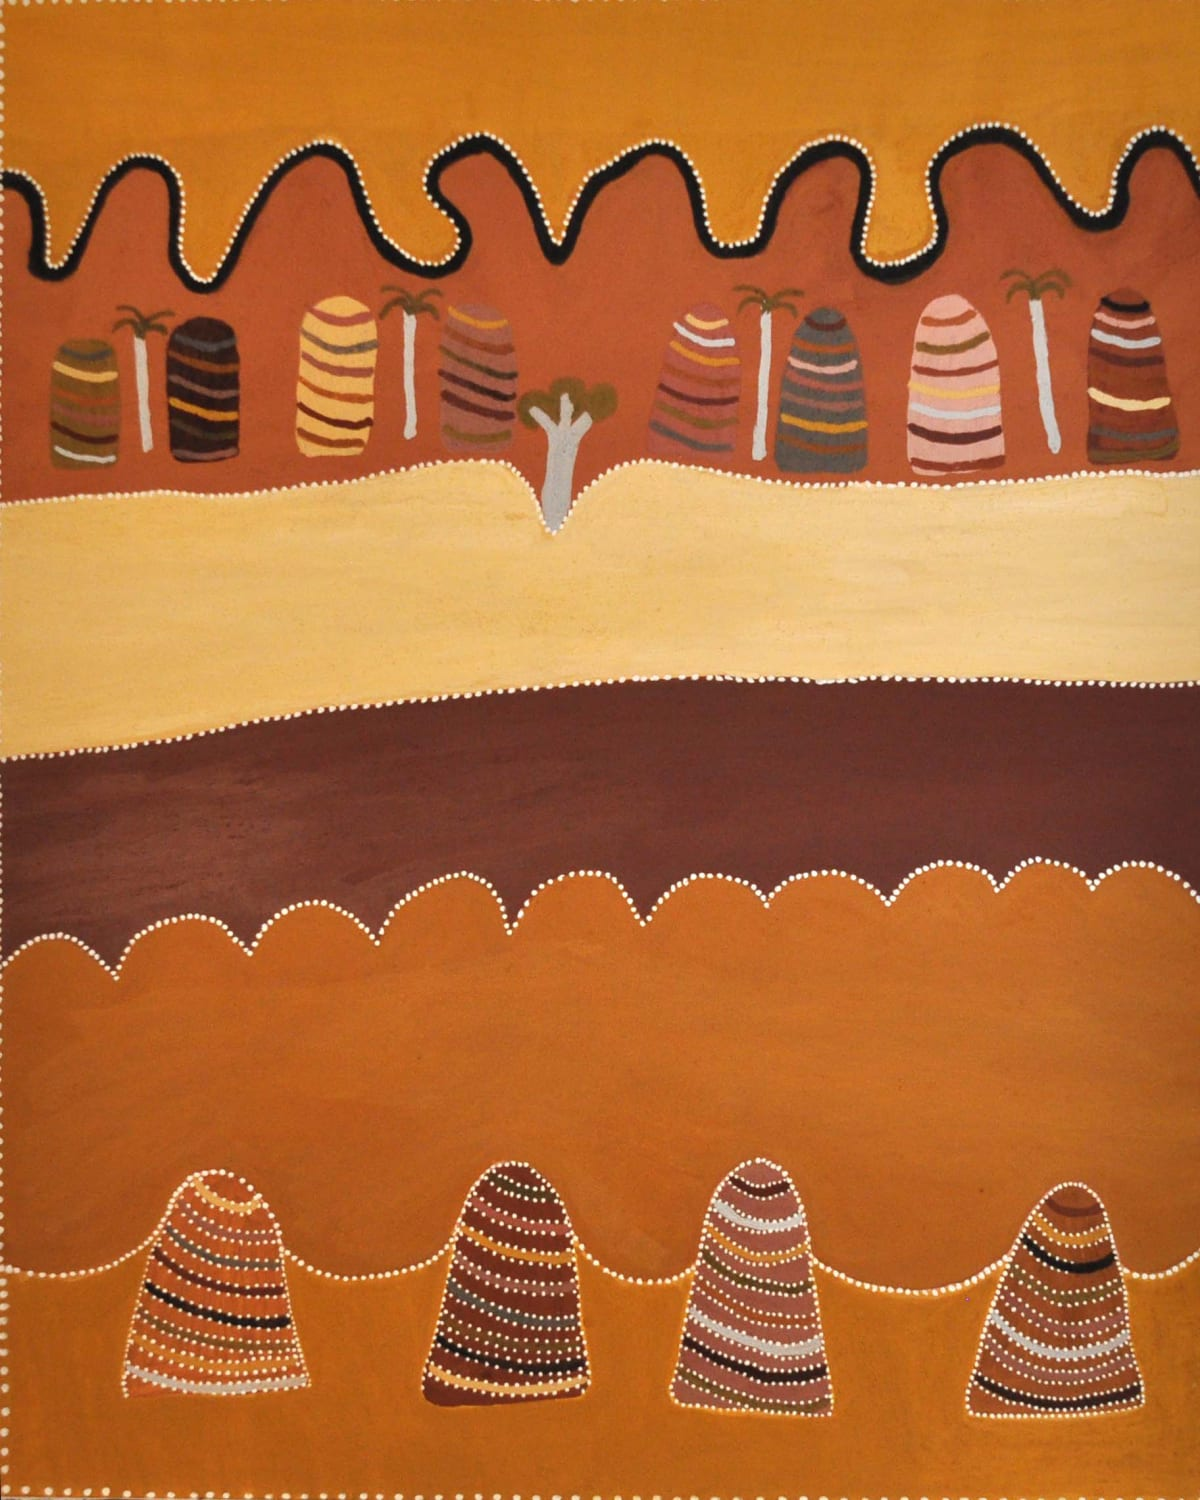 Betty Carrington Gowarrin natural ochre and pigments on canvas 150 x 120 cm